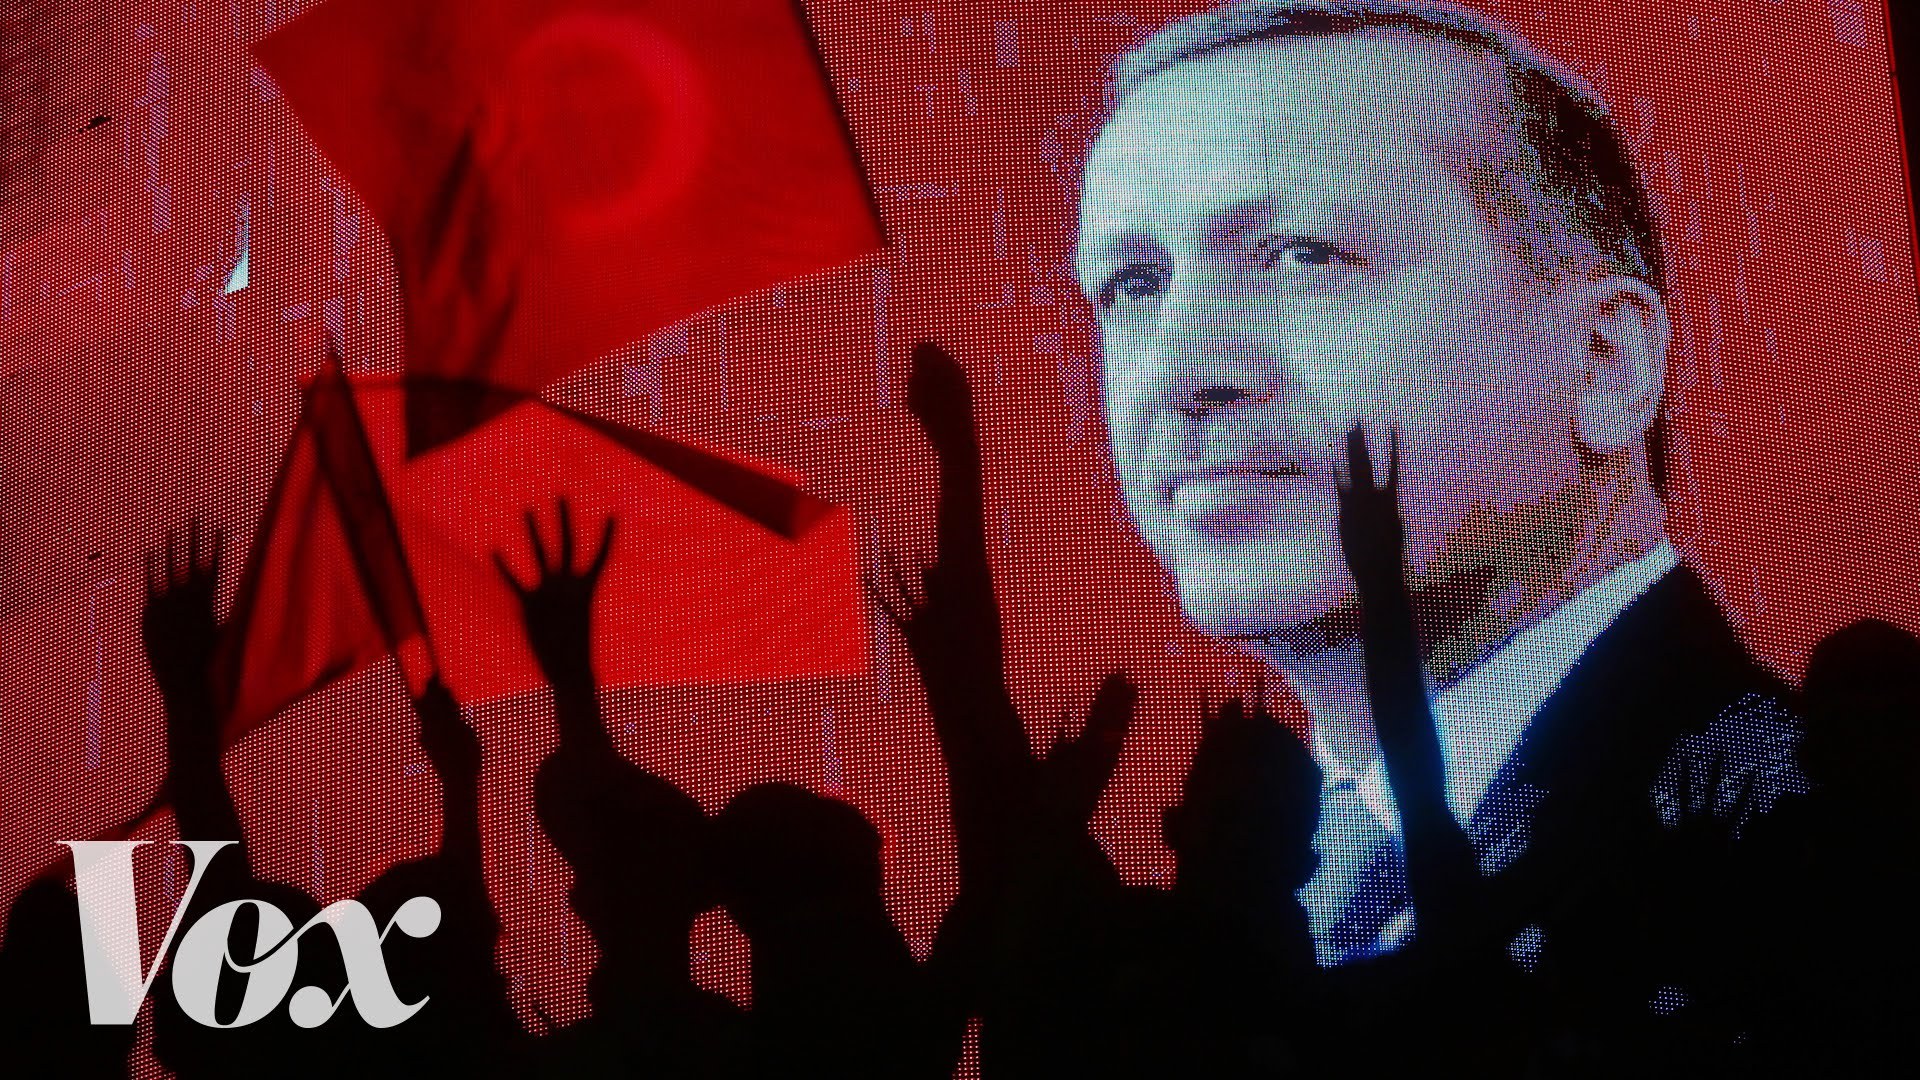 2016 Turkish Coup D'état Attempt